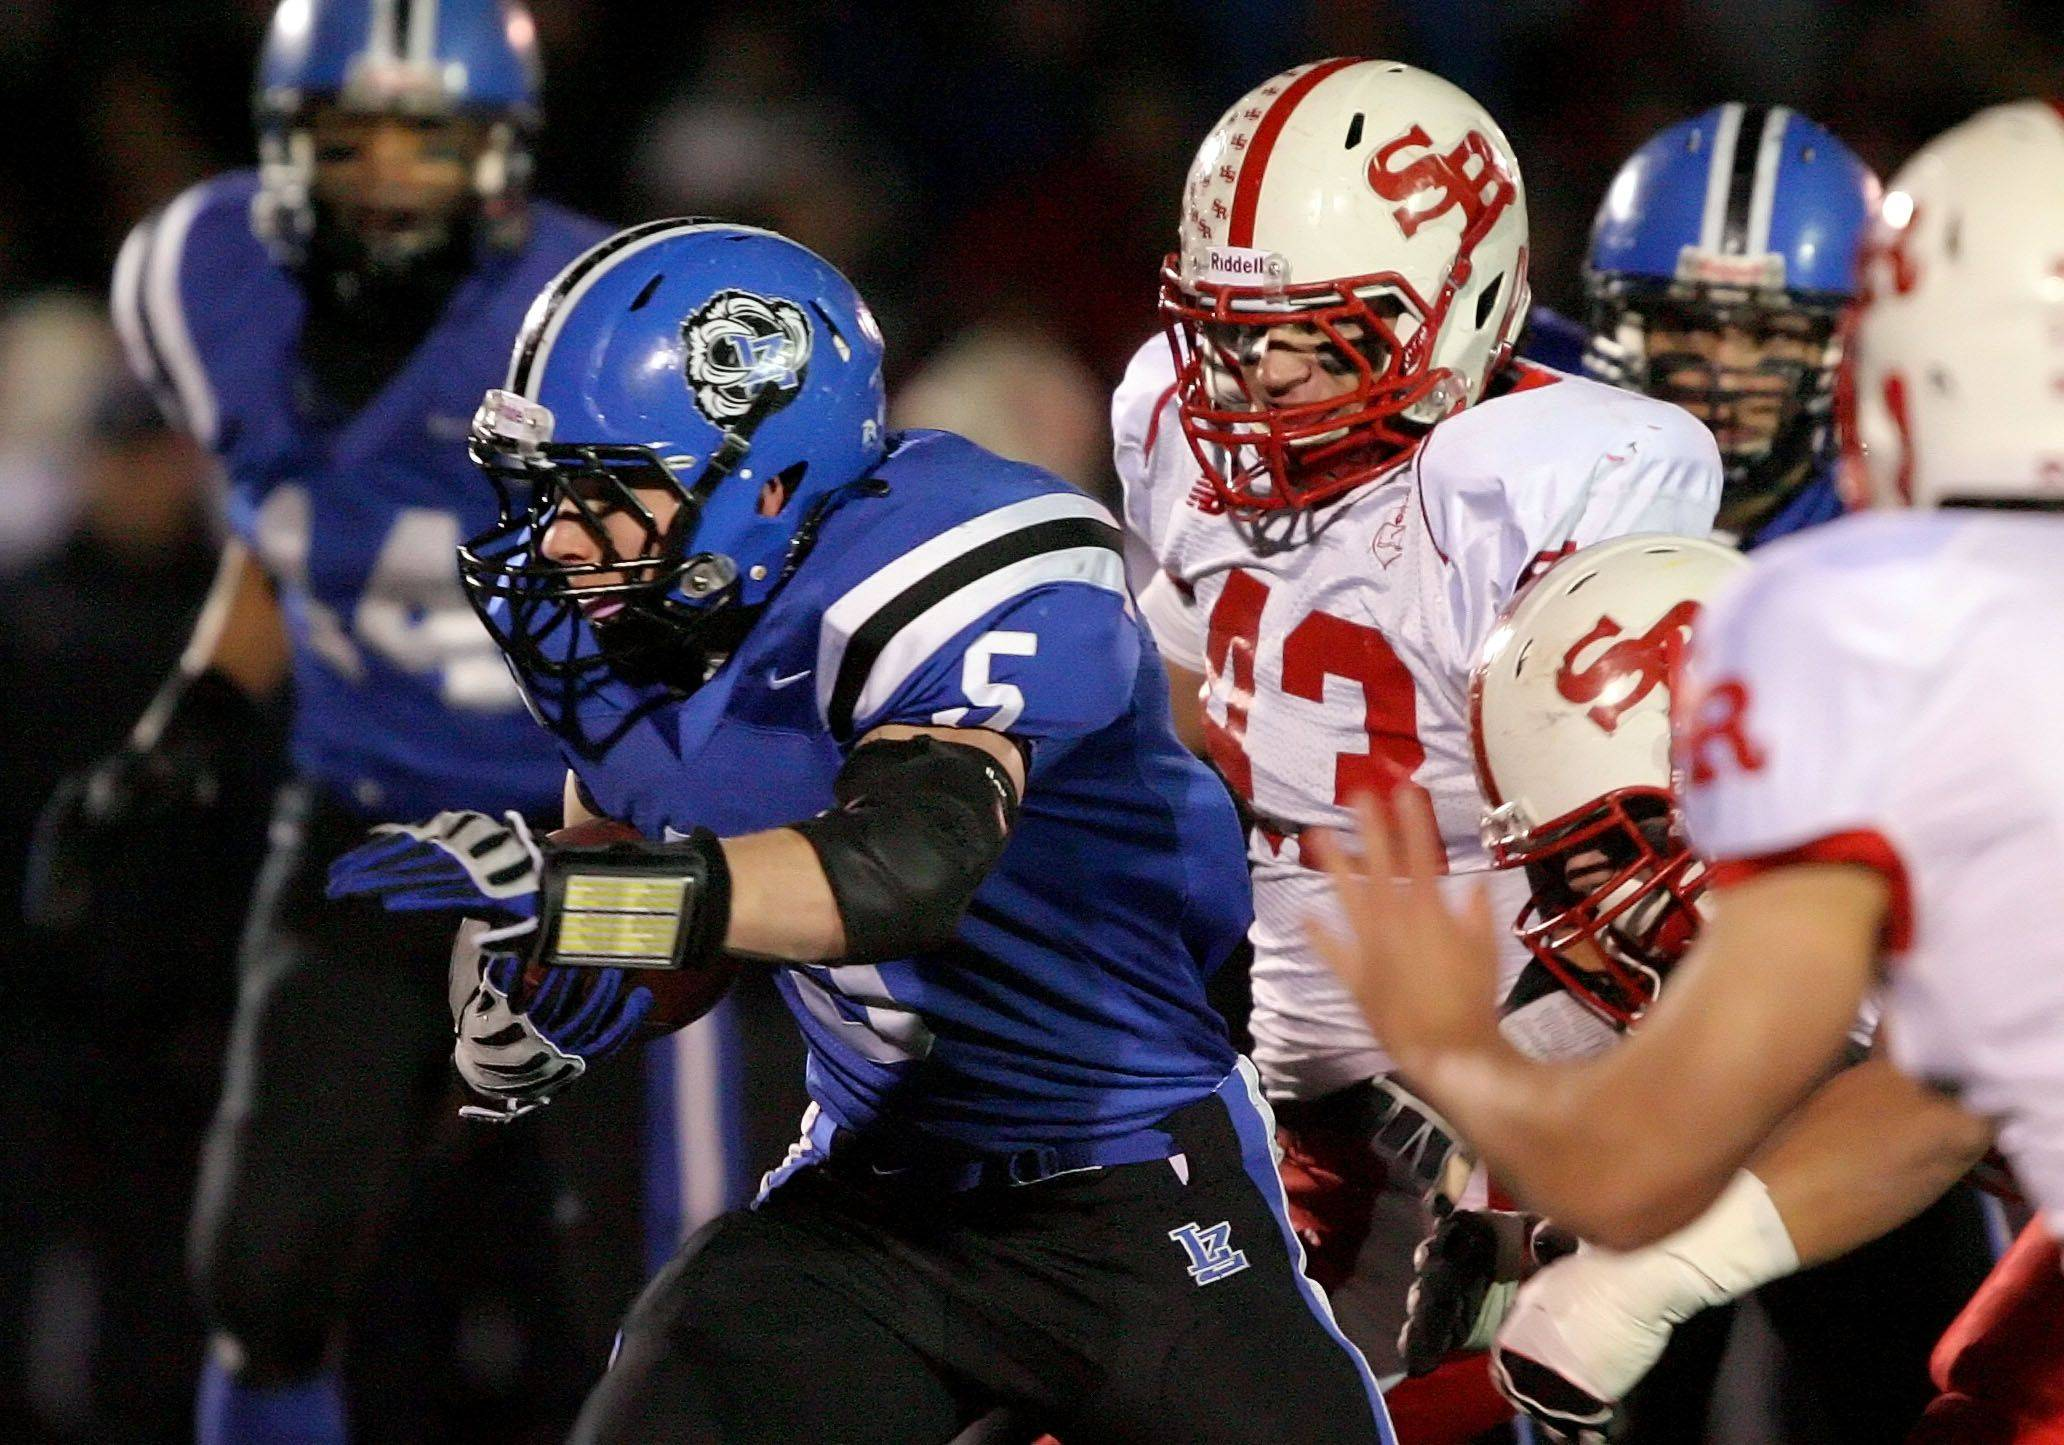 Lake Zurich's Jacob Brinlee runs by St. Rita's Matt Mullen during the IHSA Class 7A football semi final game Saturday night at Lake Zurich High School.